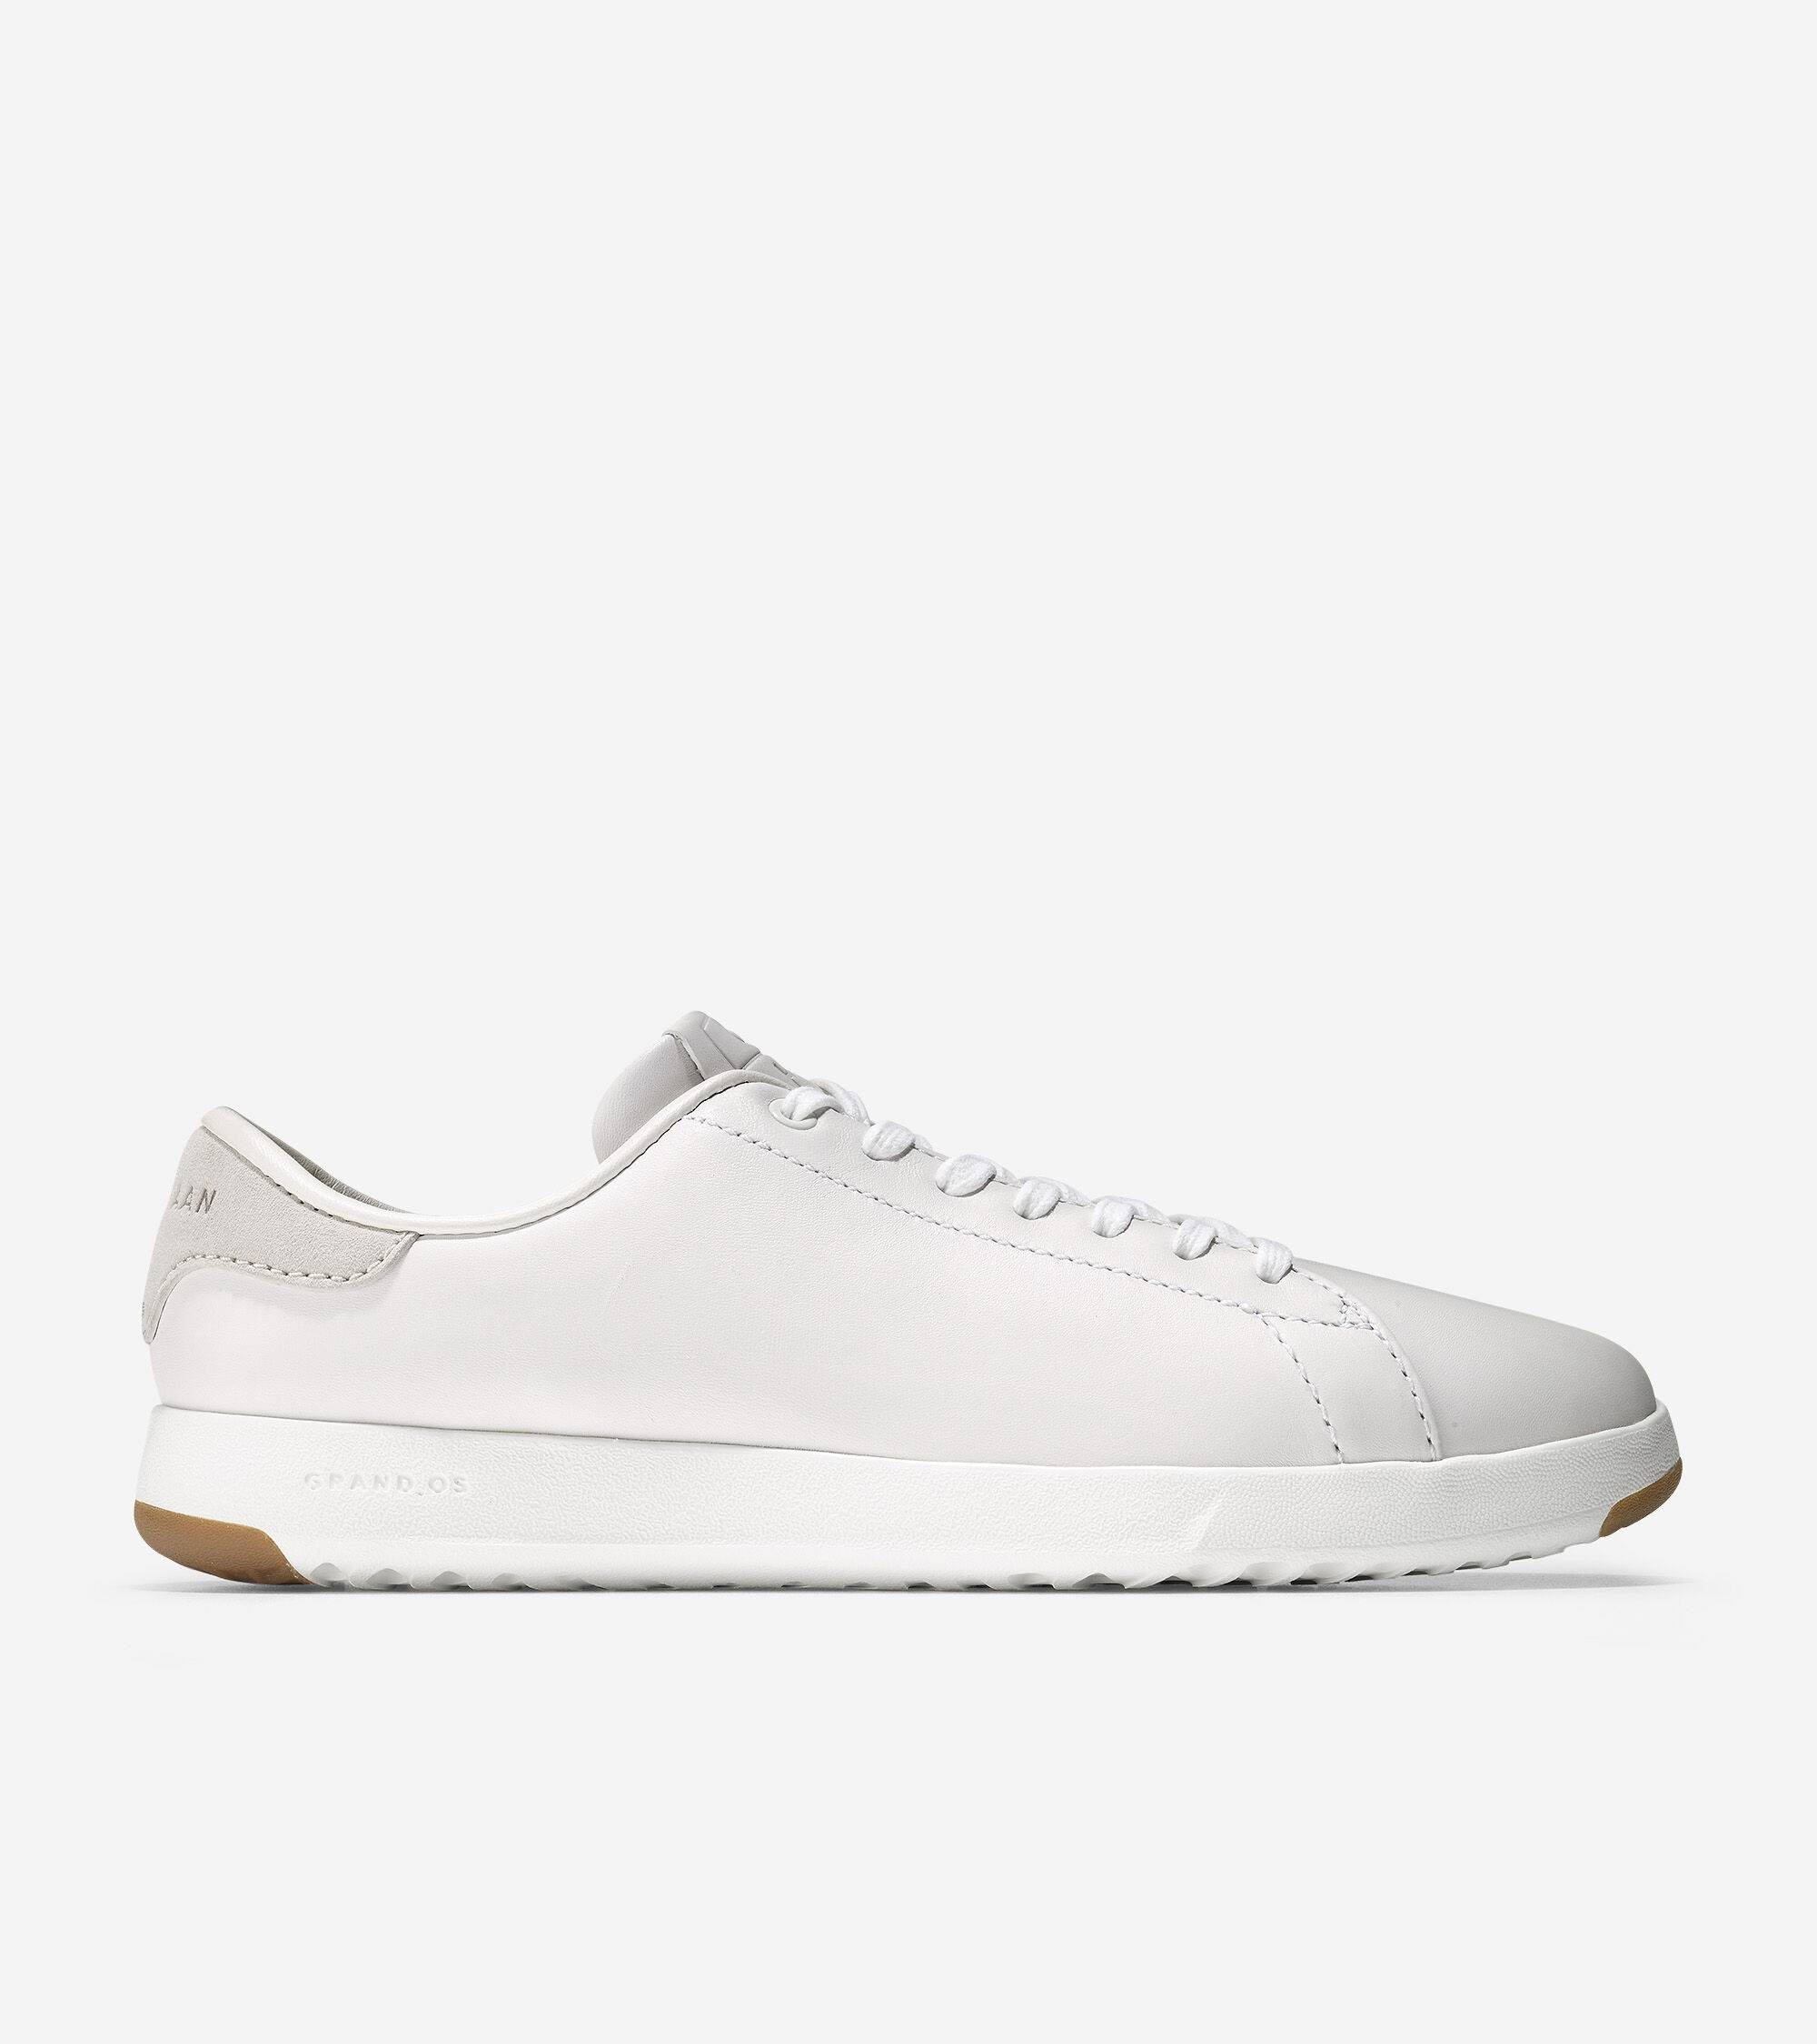 Cole Haan GrandPrø Tennis Sneaker size 7 Cole Haan Sneakers for Women. Optic White Leather GrandPrø Tennis Sneaker from Cole Haan - Optic White Leather - Size: 7